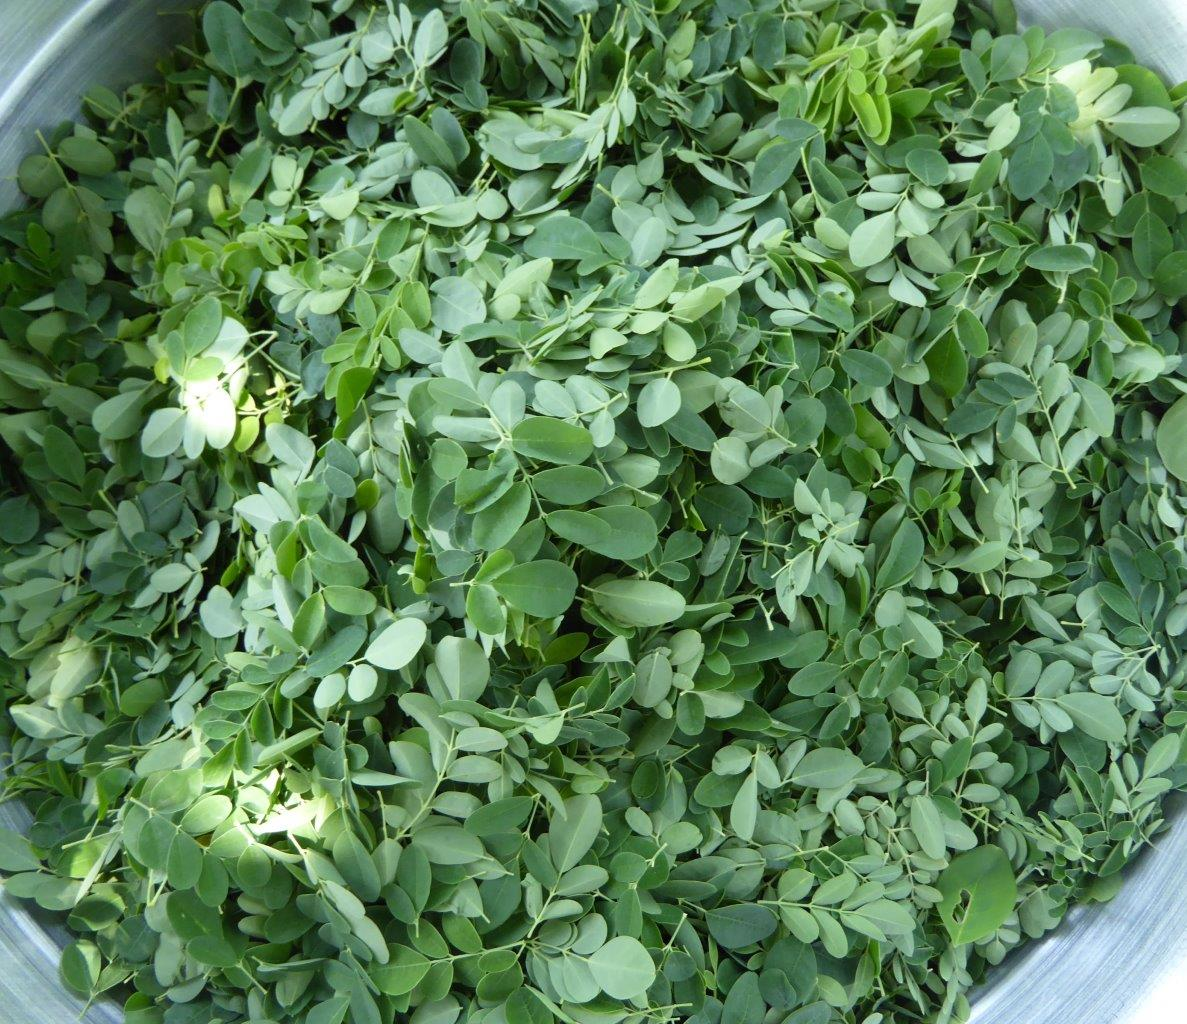 Moringa leaves for moringa sauce